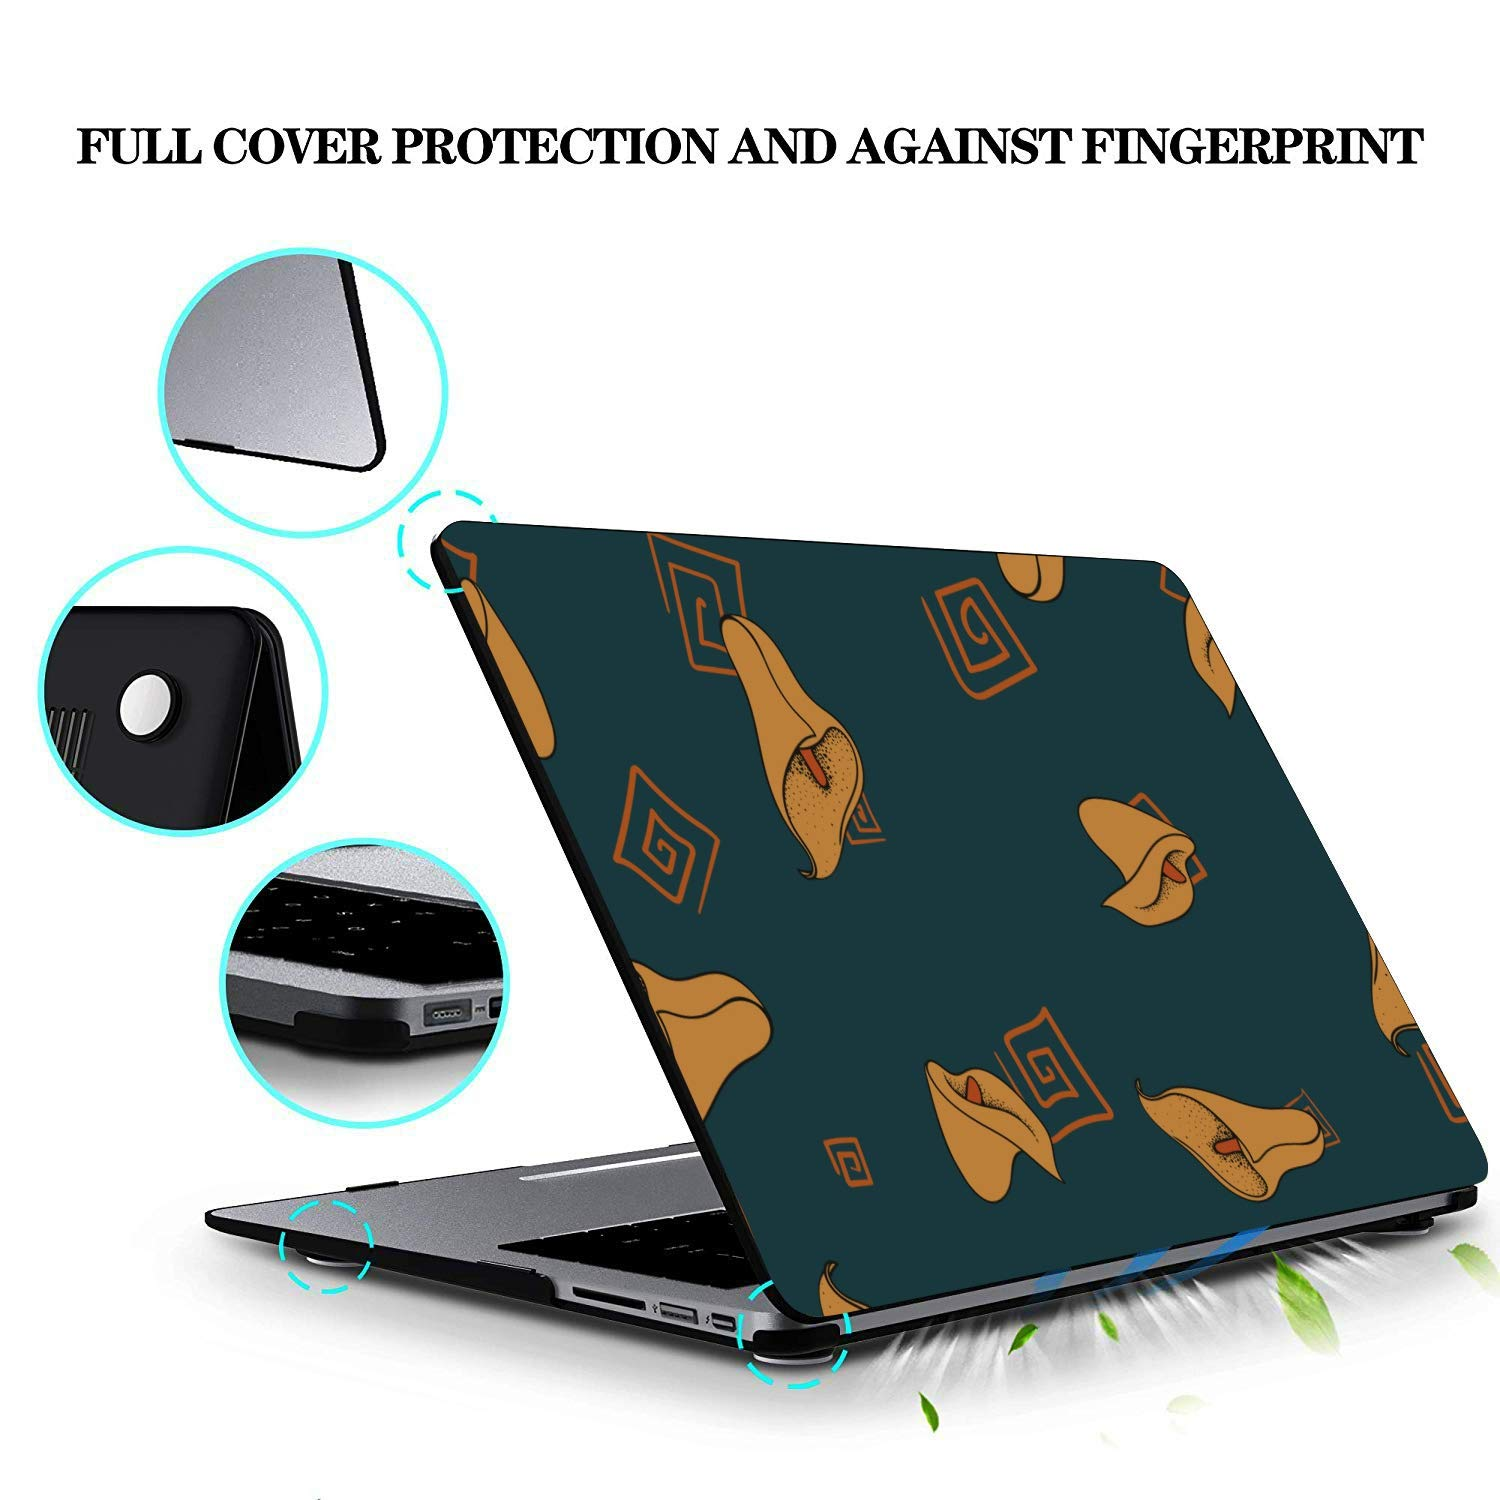 Macbookpro Case Yellow Elegant Noble Floral Calla Plastic Hard Shell Compatible Mac Air 11 Pro 13 15 Laptop Pro Accessories Protection for MacBook 2016-2019 Version